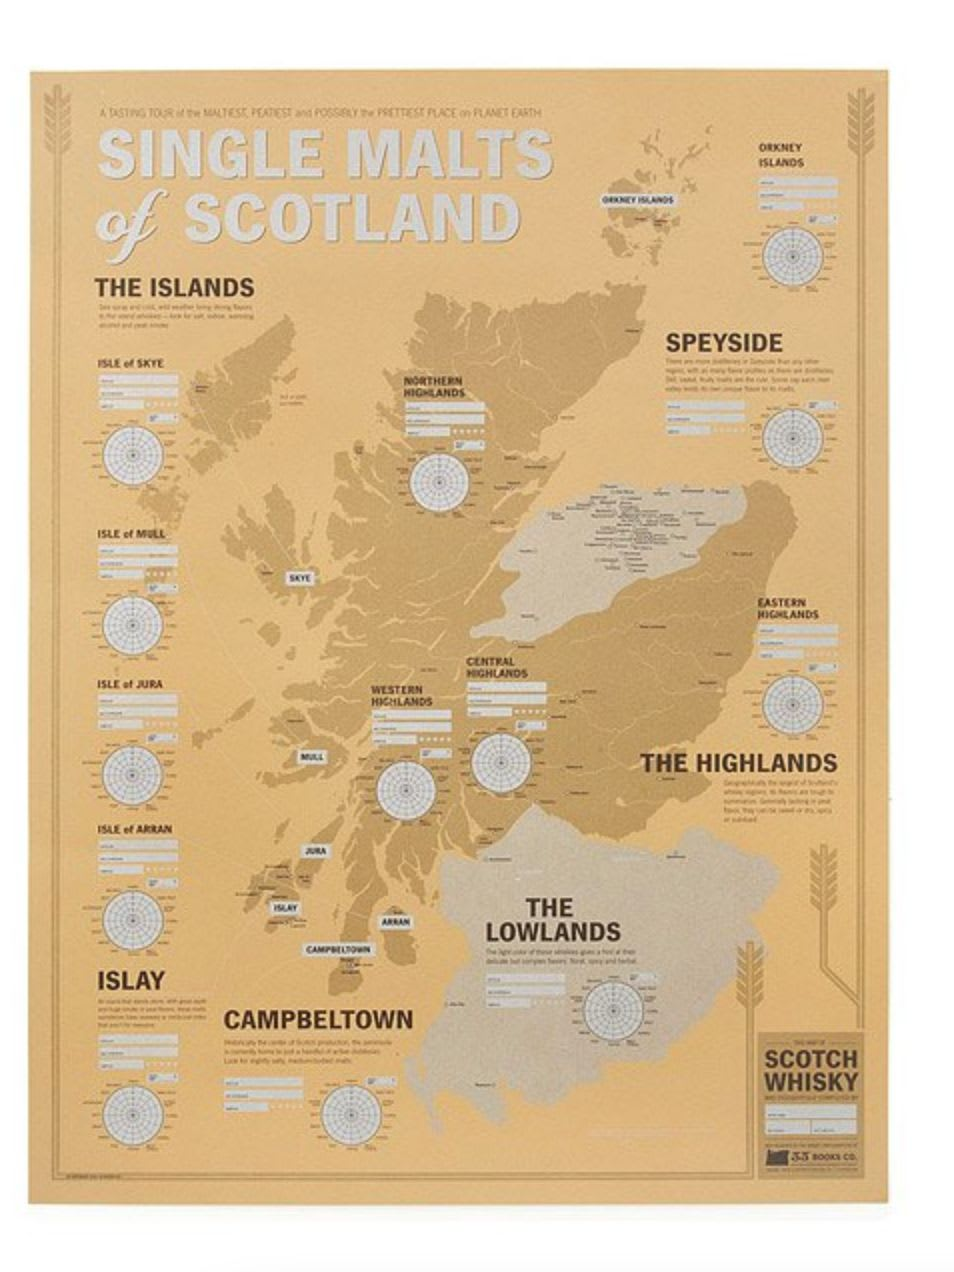 Discover Dave Selden's single malt whisky map of Scotland on Uncommon Goods.